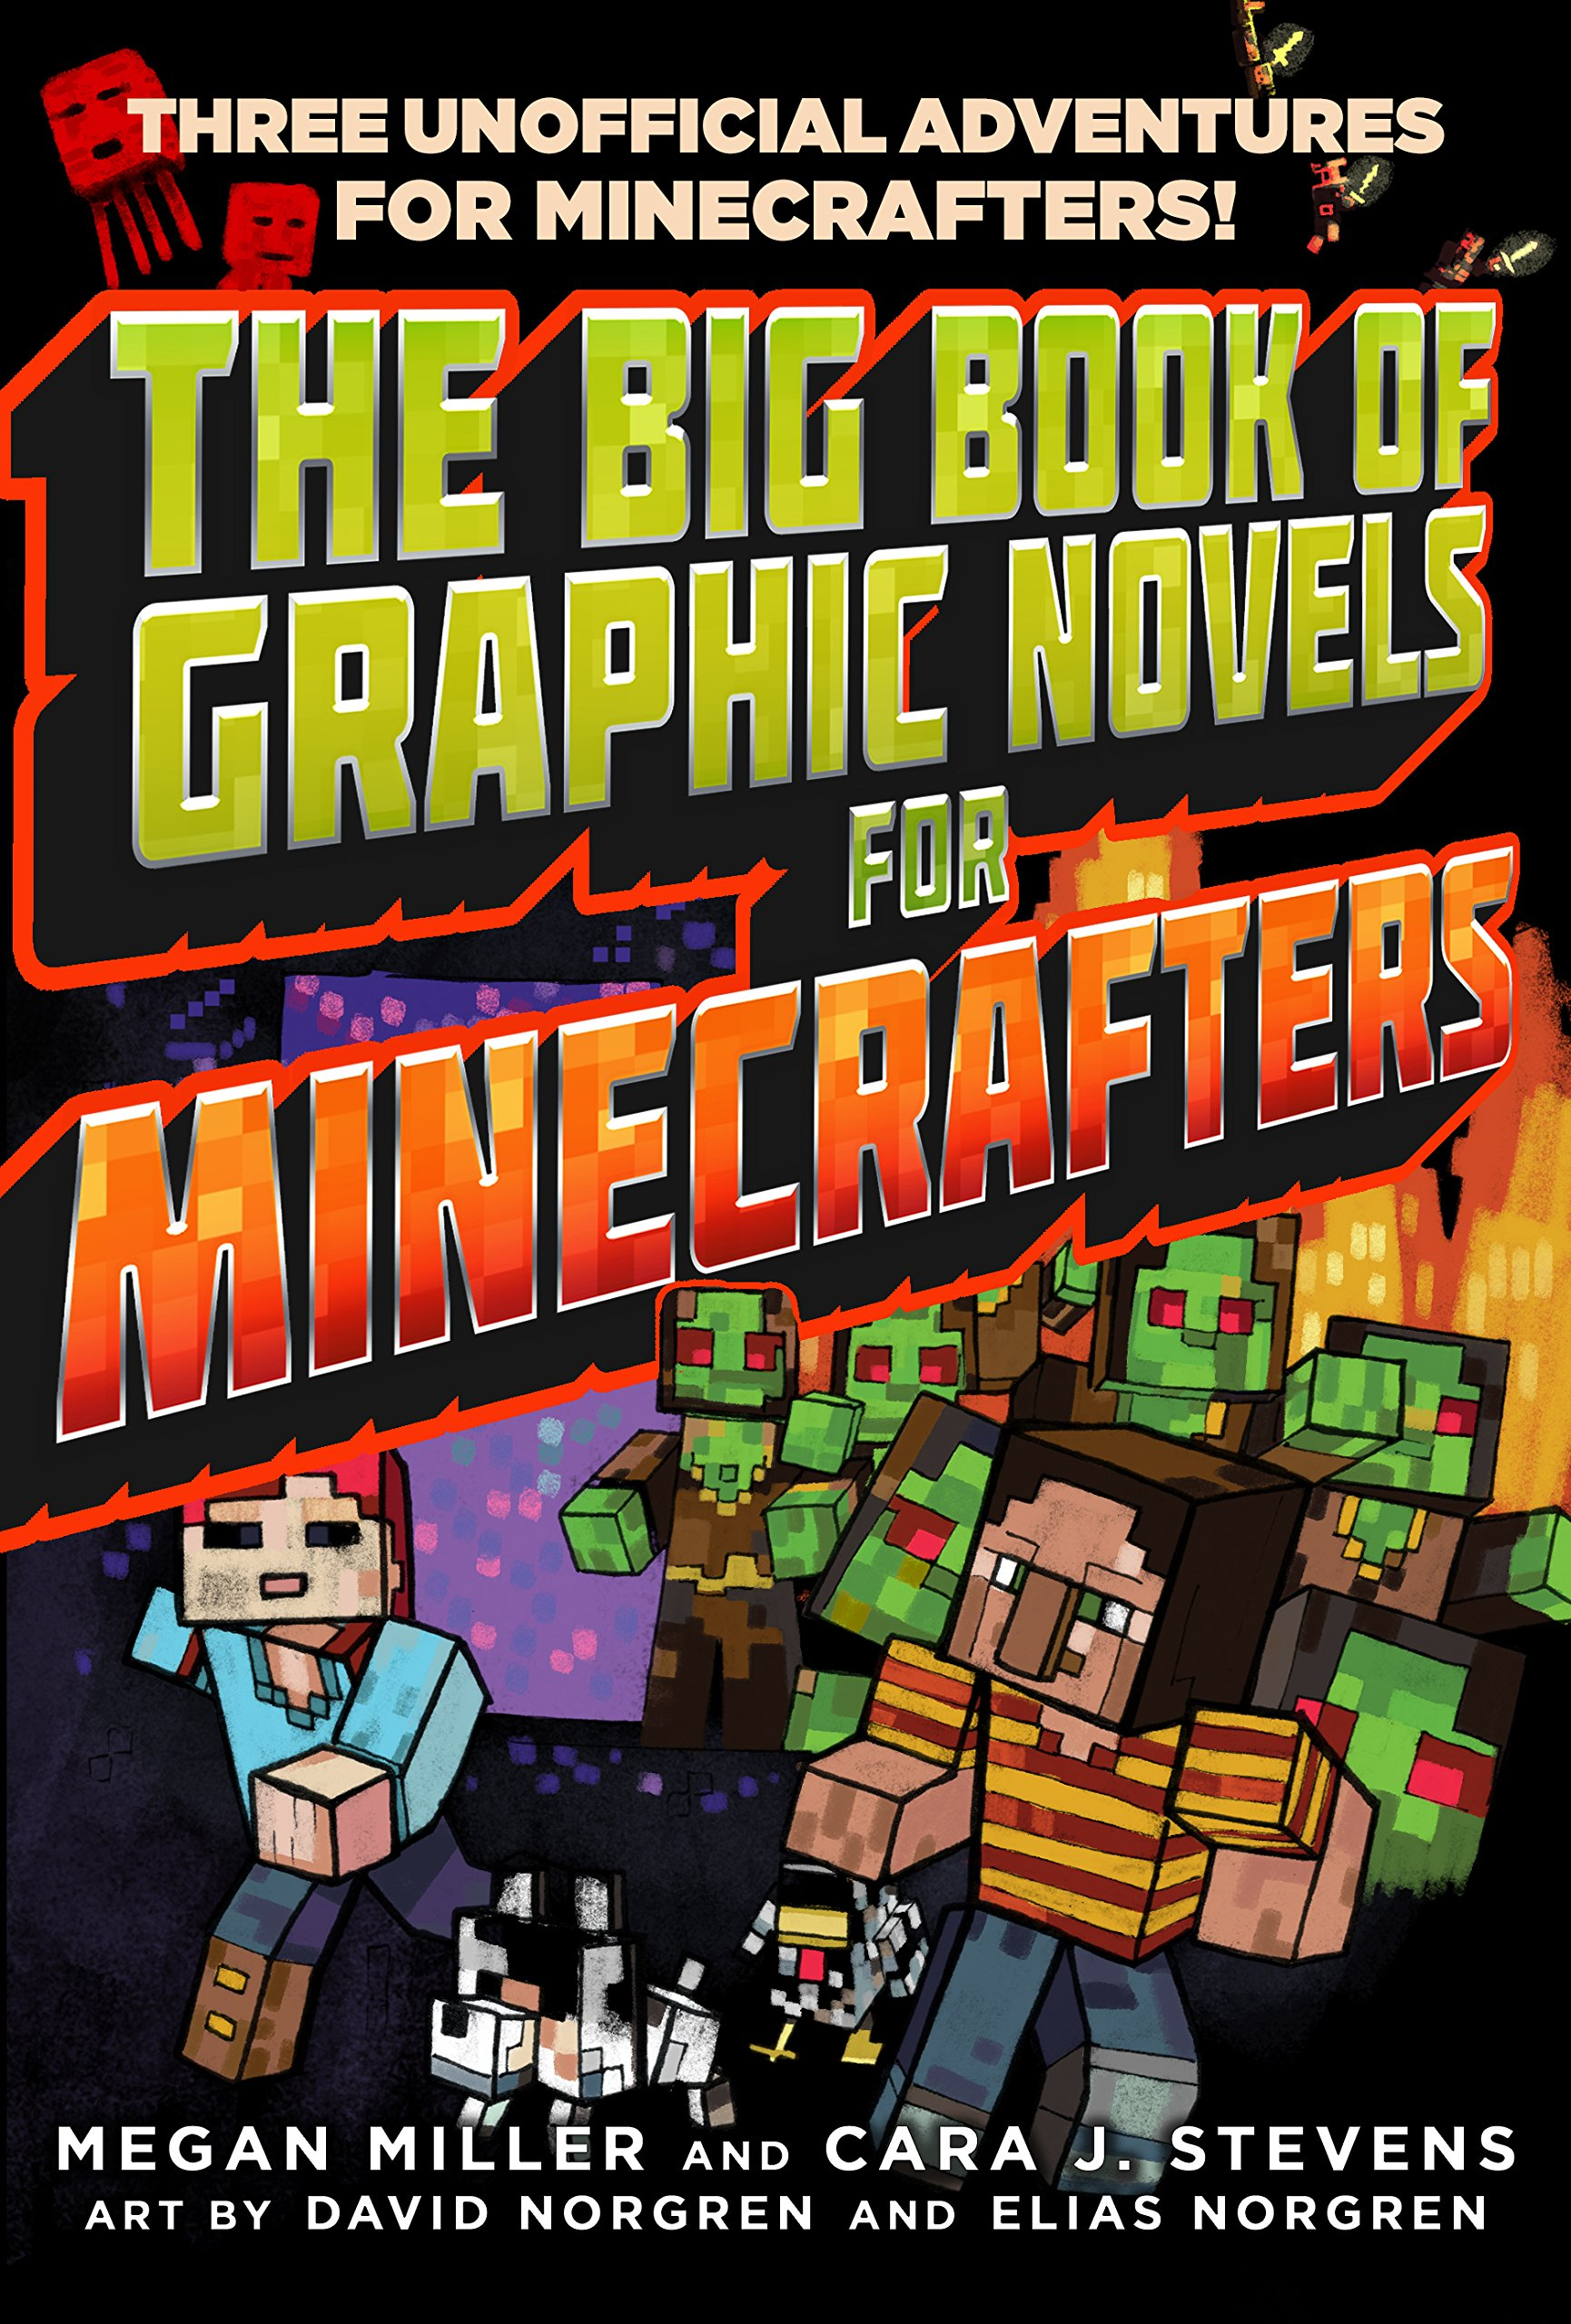 The Big Book of Graphic Novels for Minecrafters: Three Unofficial Adventures